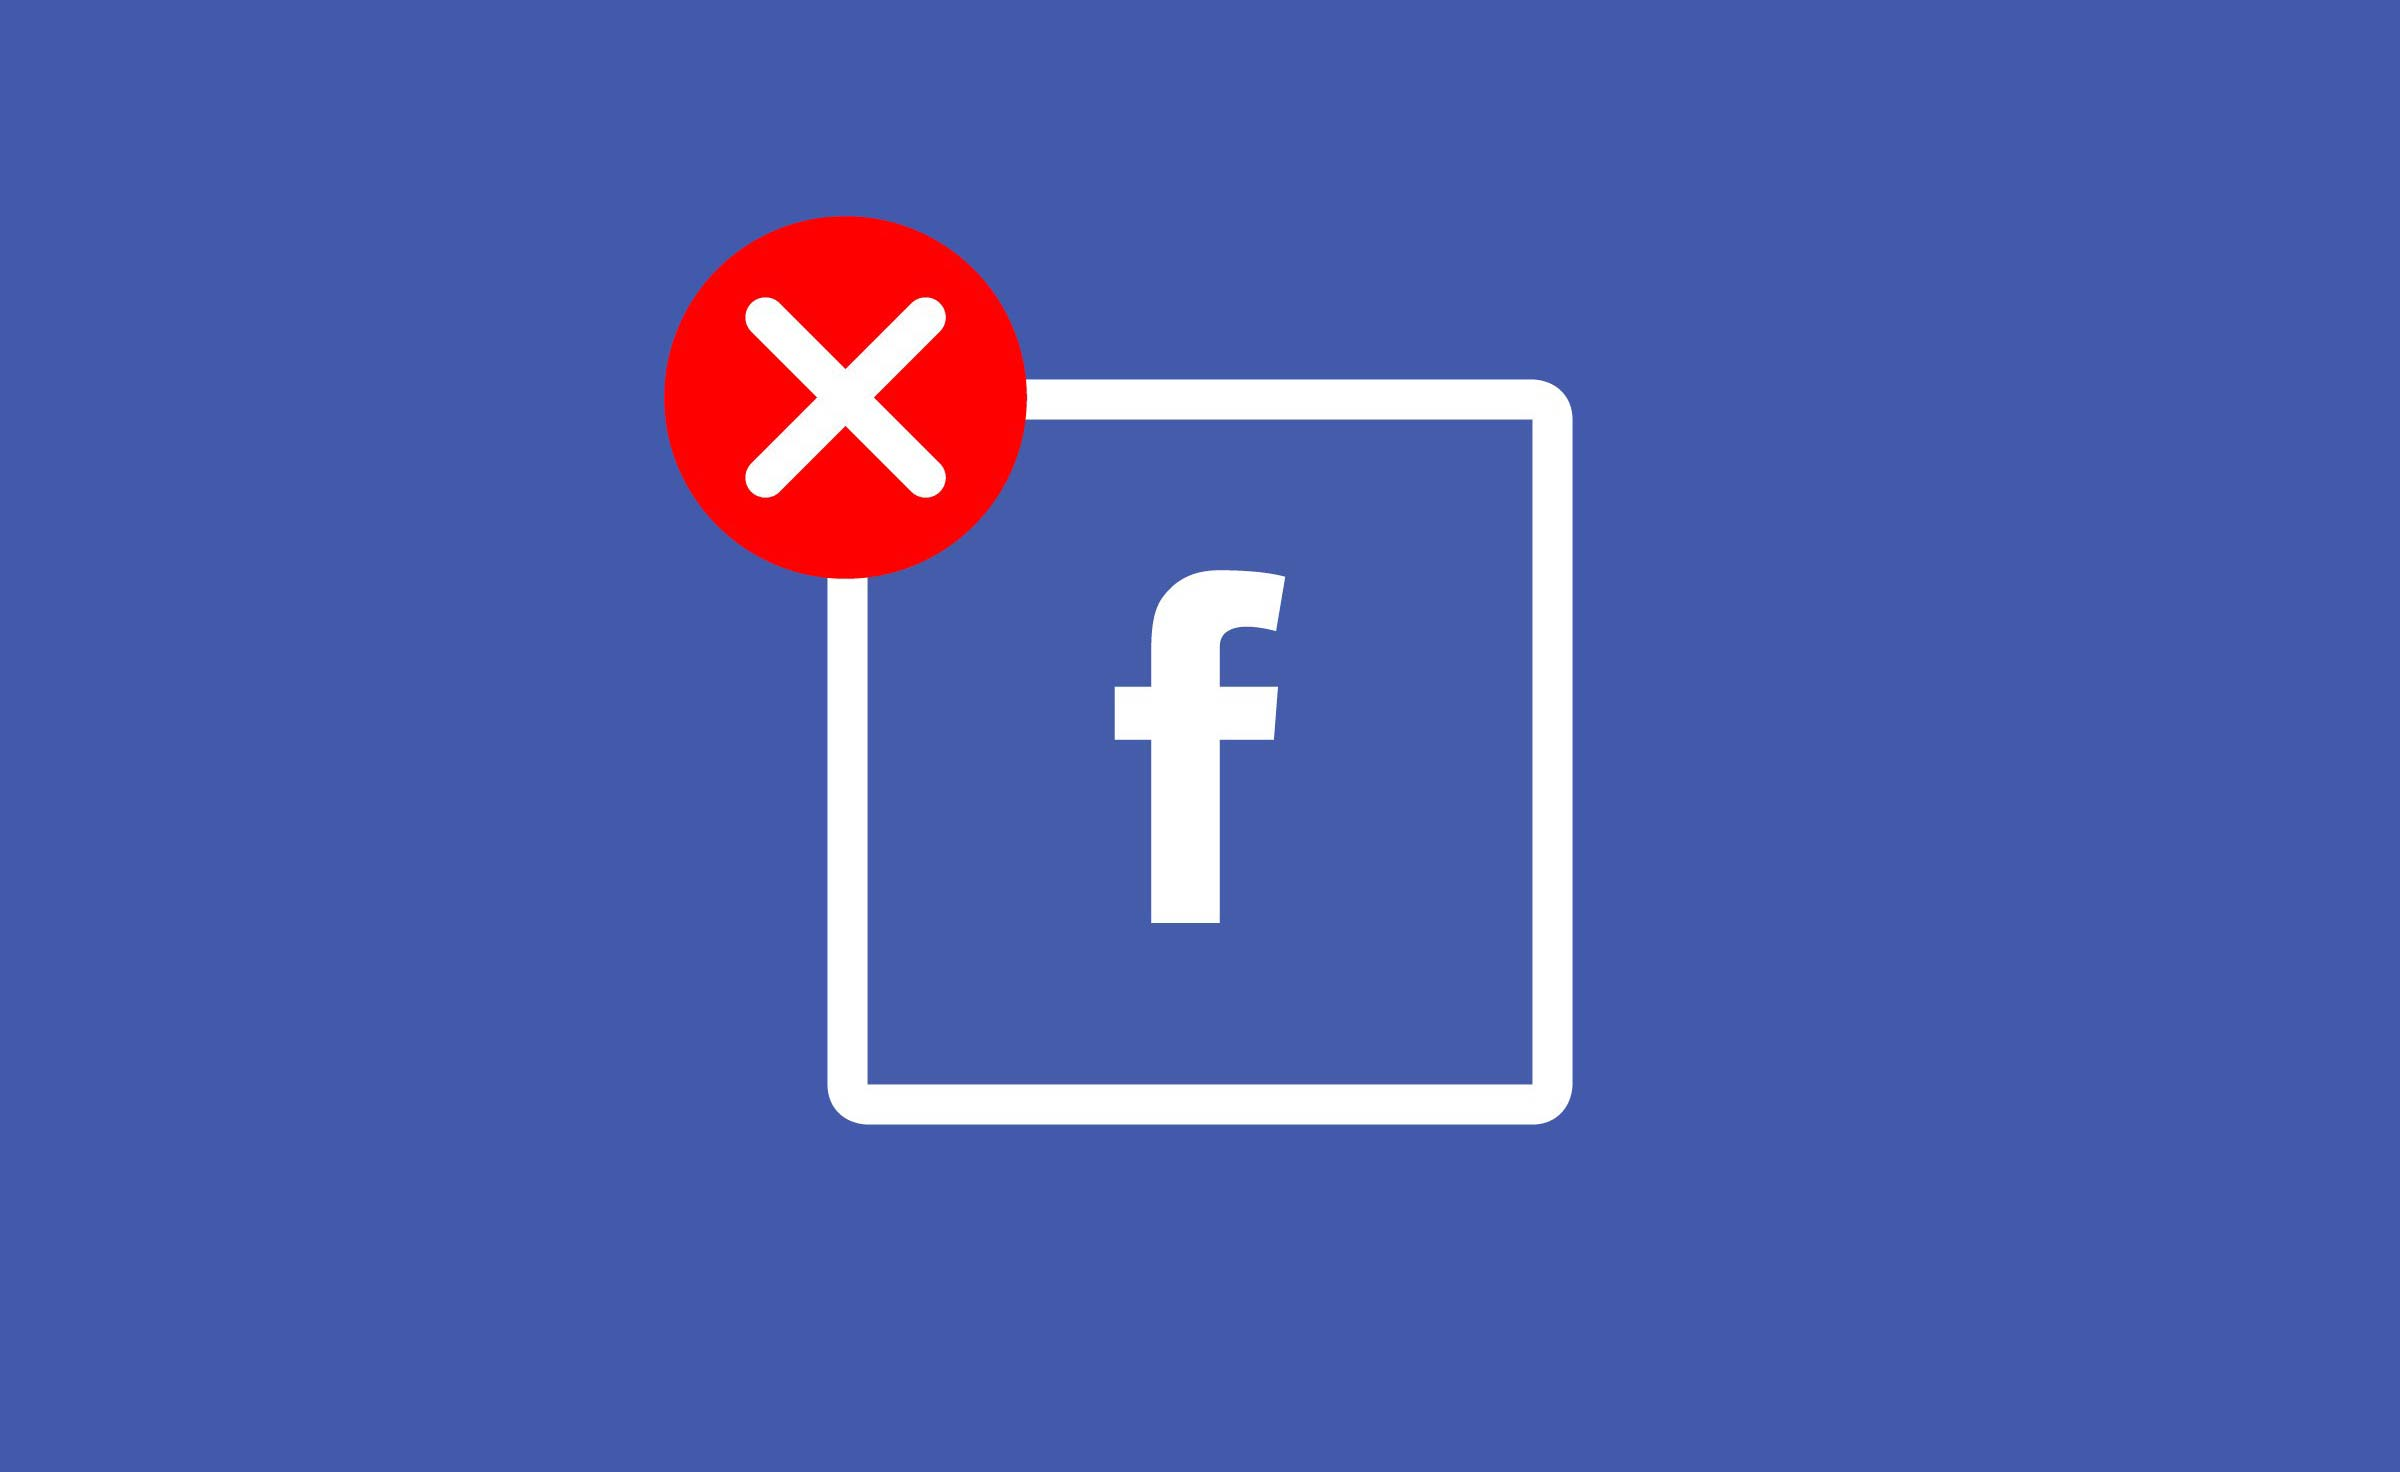 How To Use 'Your Time On Facebook' To Avoid Overuse?